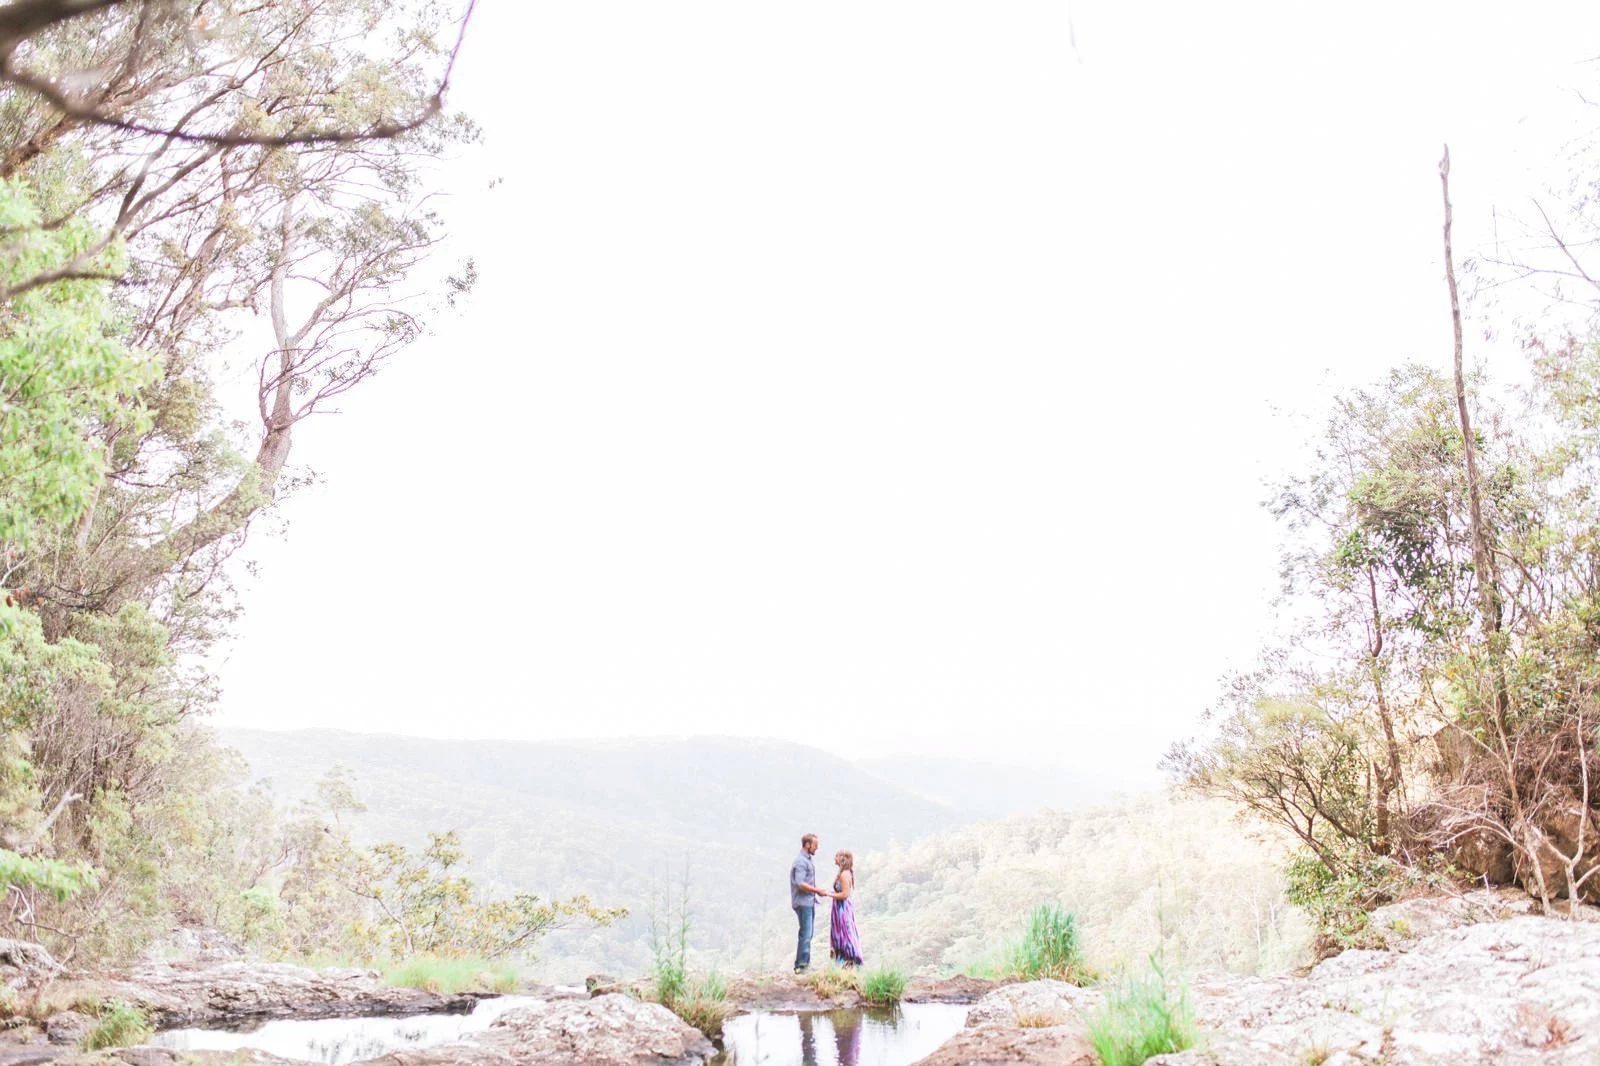 Engagement location ideas - Mario Colli Photography | Gold